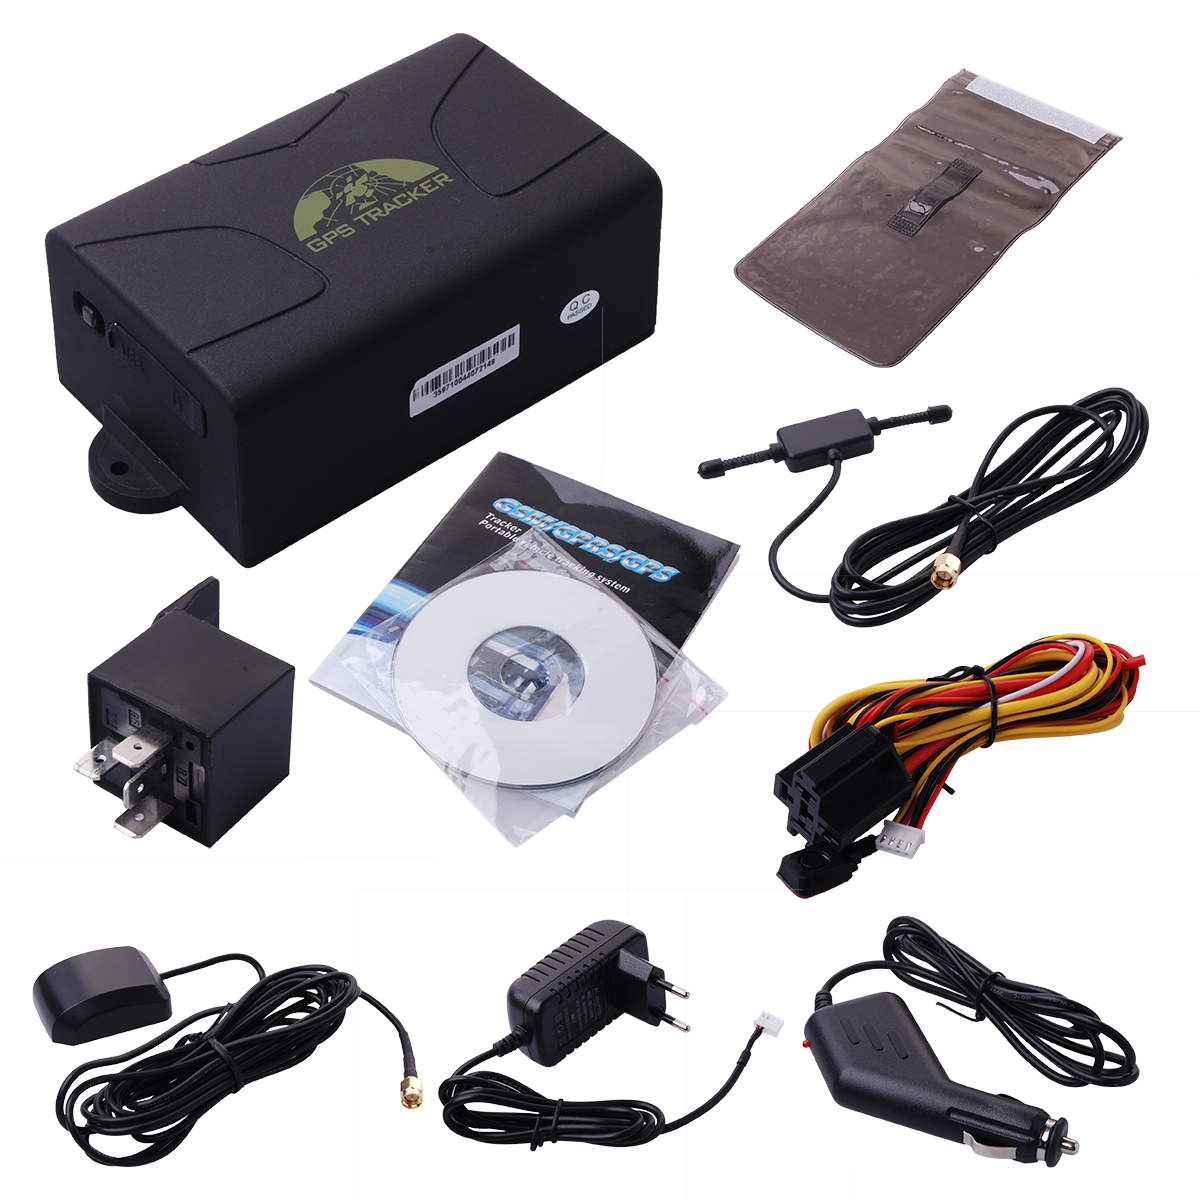 Aliexpress Com Buy Mini Realtime Gsm Gprs Gps Tracker Car Vehicle Tracking System Device Tk Ma From Reliable Gps Glonass Suppliers On Xcs Motor Co